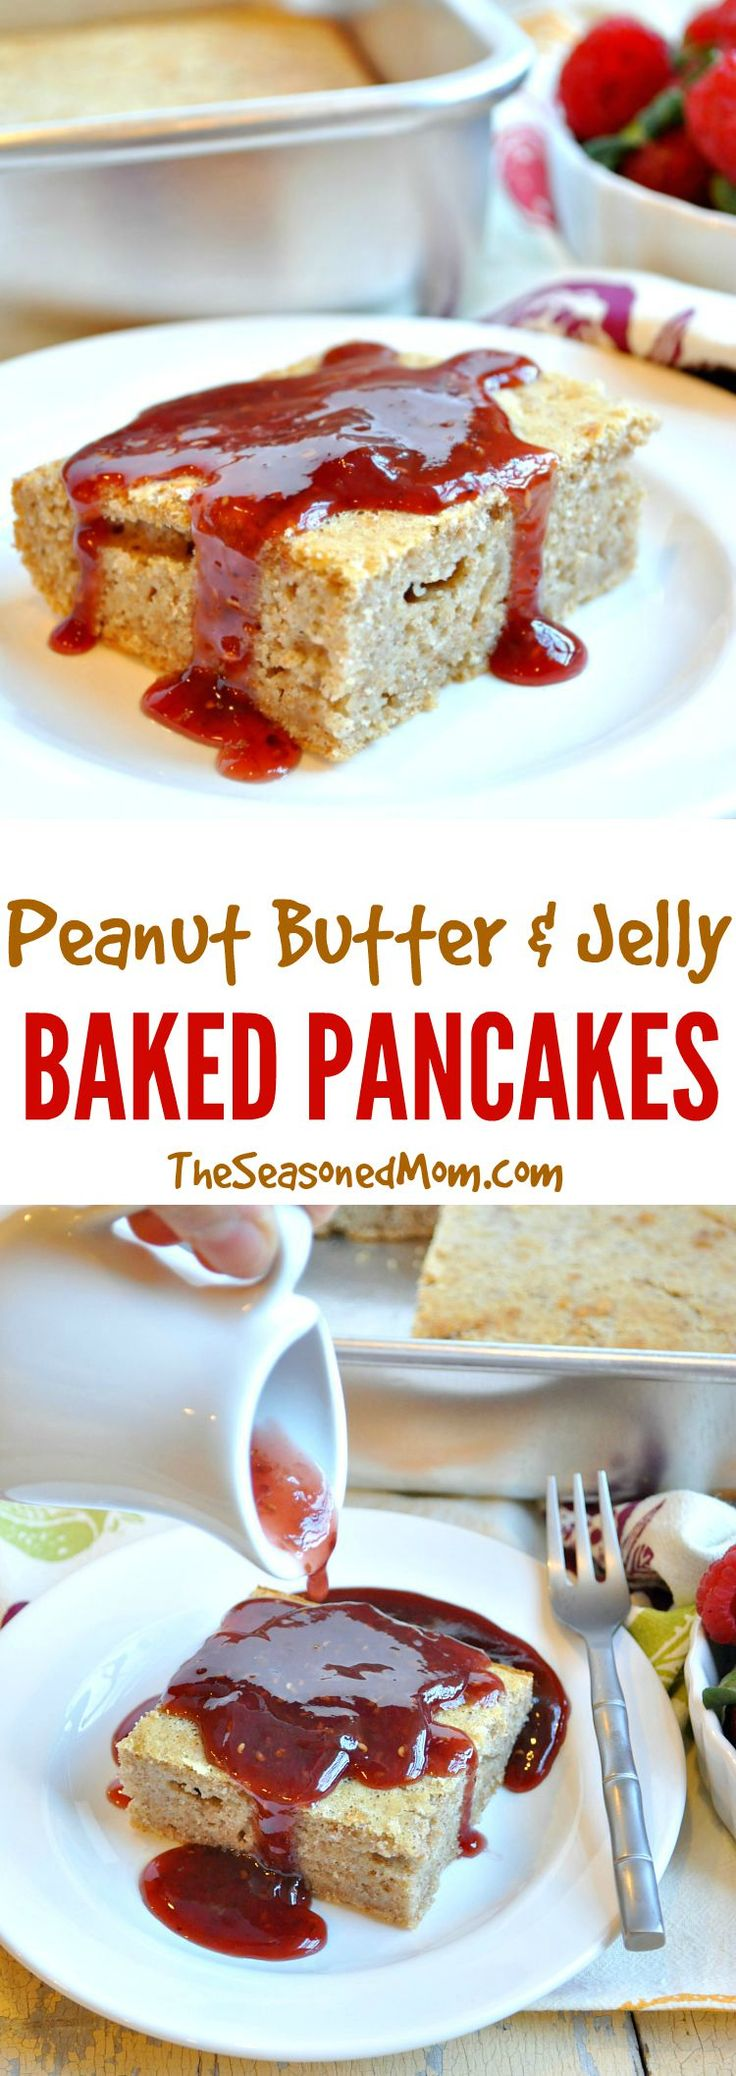 Peanut Butter and Jelly Baked Pancakes are the easiest way to prepare pancakes for a crowd! A nutritious whole grain peanut butter batter is baked in the oven, sliced into squares, and topped with raspberry jam syrup. They're a great make-ahead and freezer-friendly breakfast option for busy days! #MyPBJMoment #ad @smuckersrecipes